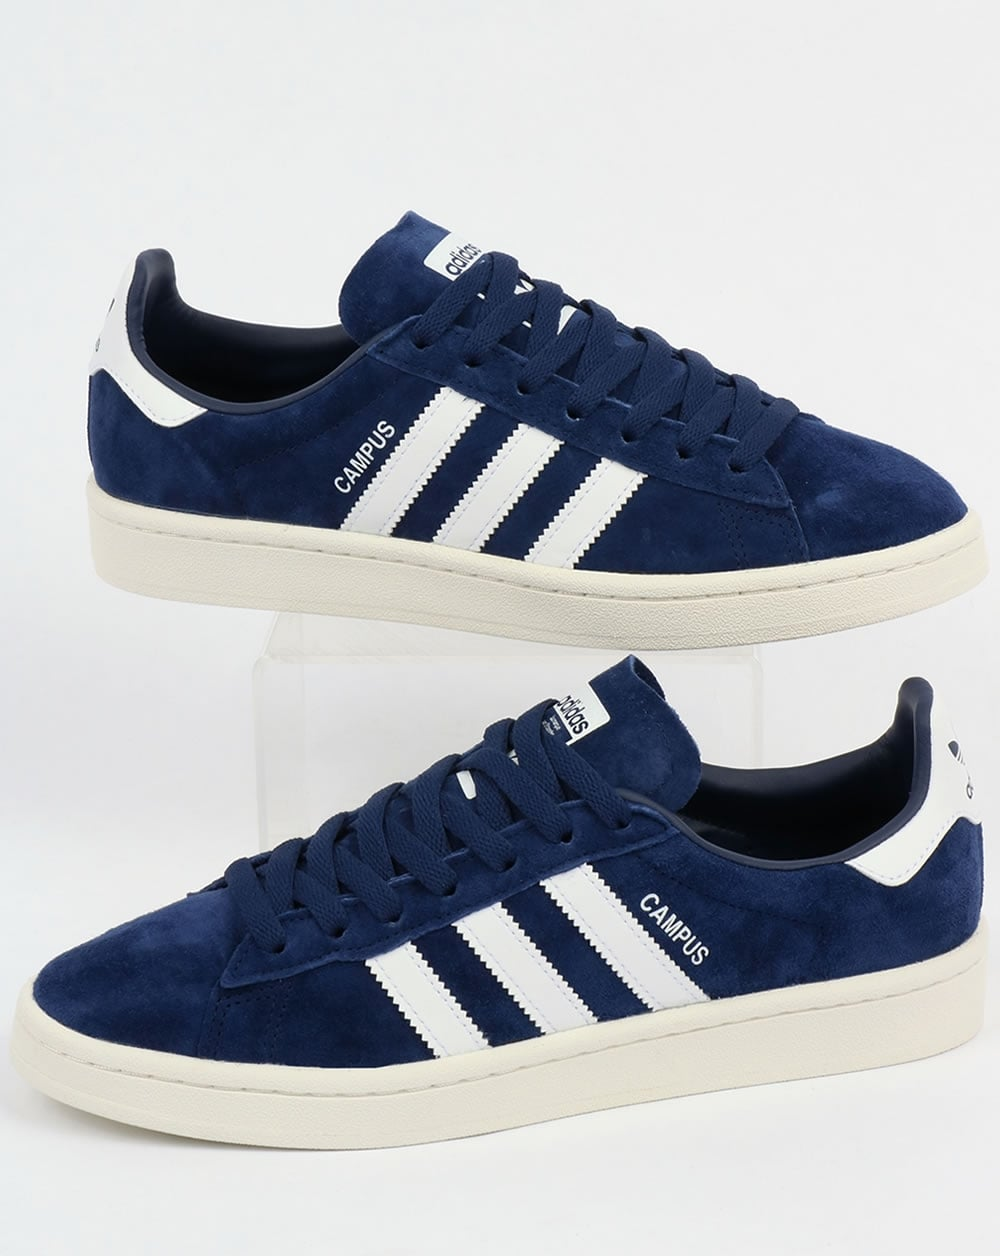 Adidas Campus Suede Shoes